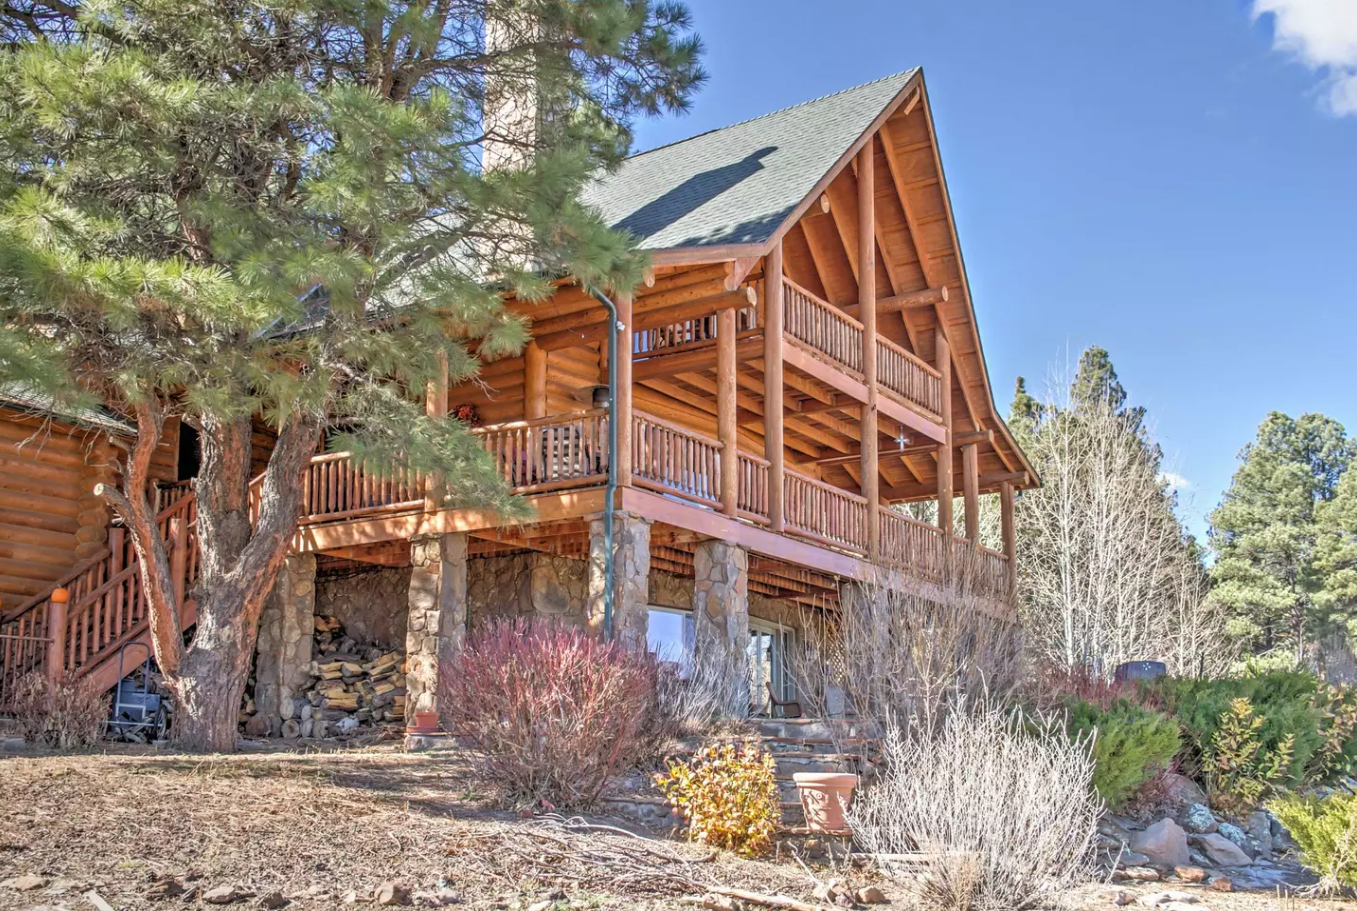 Grant yourself the ultimate escape to the Grand Canyon State with this stunning 3-bedroom, 3.5-bathroom Flagstaff vacation rental cabin, which sleeps 10 guests comfortably. Chock-full of amenities and situated in a private scenic landscape. Tagged: Exterior, Cabin Building Type, A-Frame RoofLine, Shingles Roof Material, and Wood Siding Material.  Photo 12 of 12 in Alfie the A-Frame and 10 Other A-Grade Accommodations